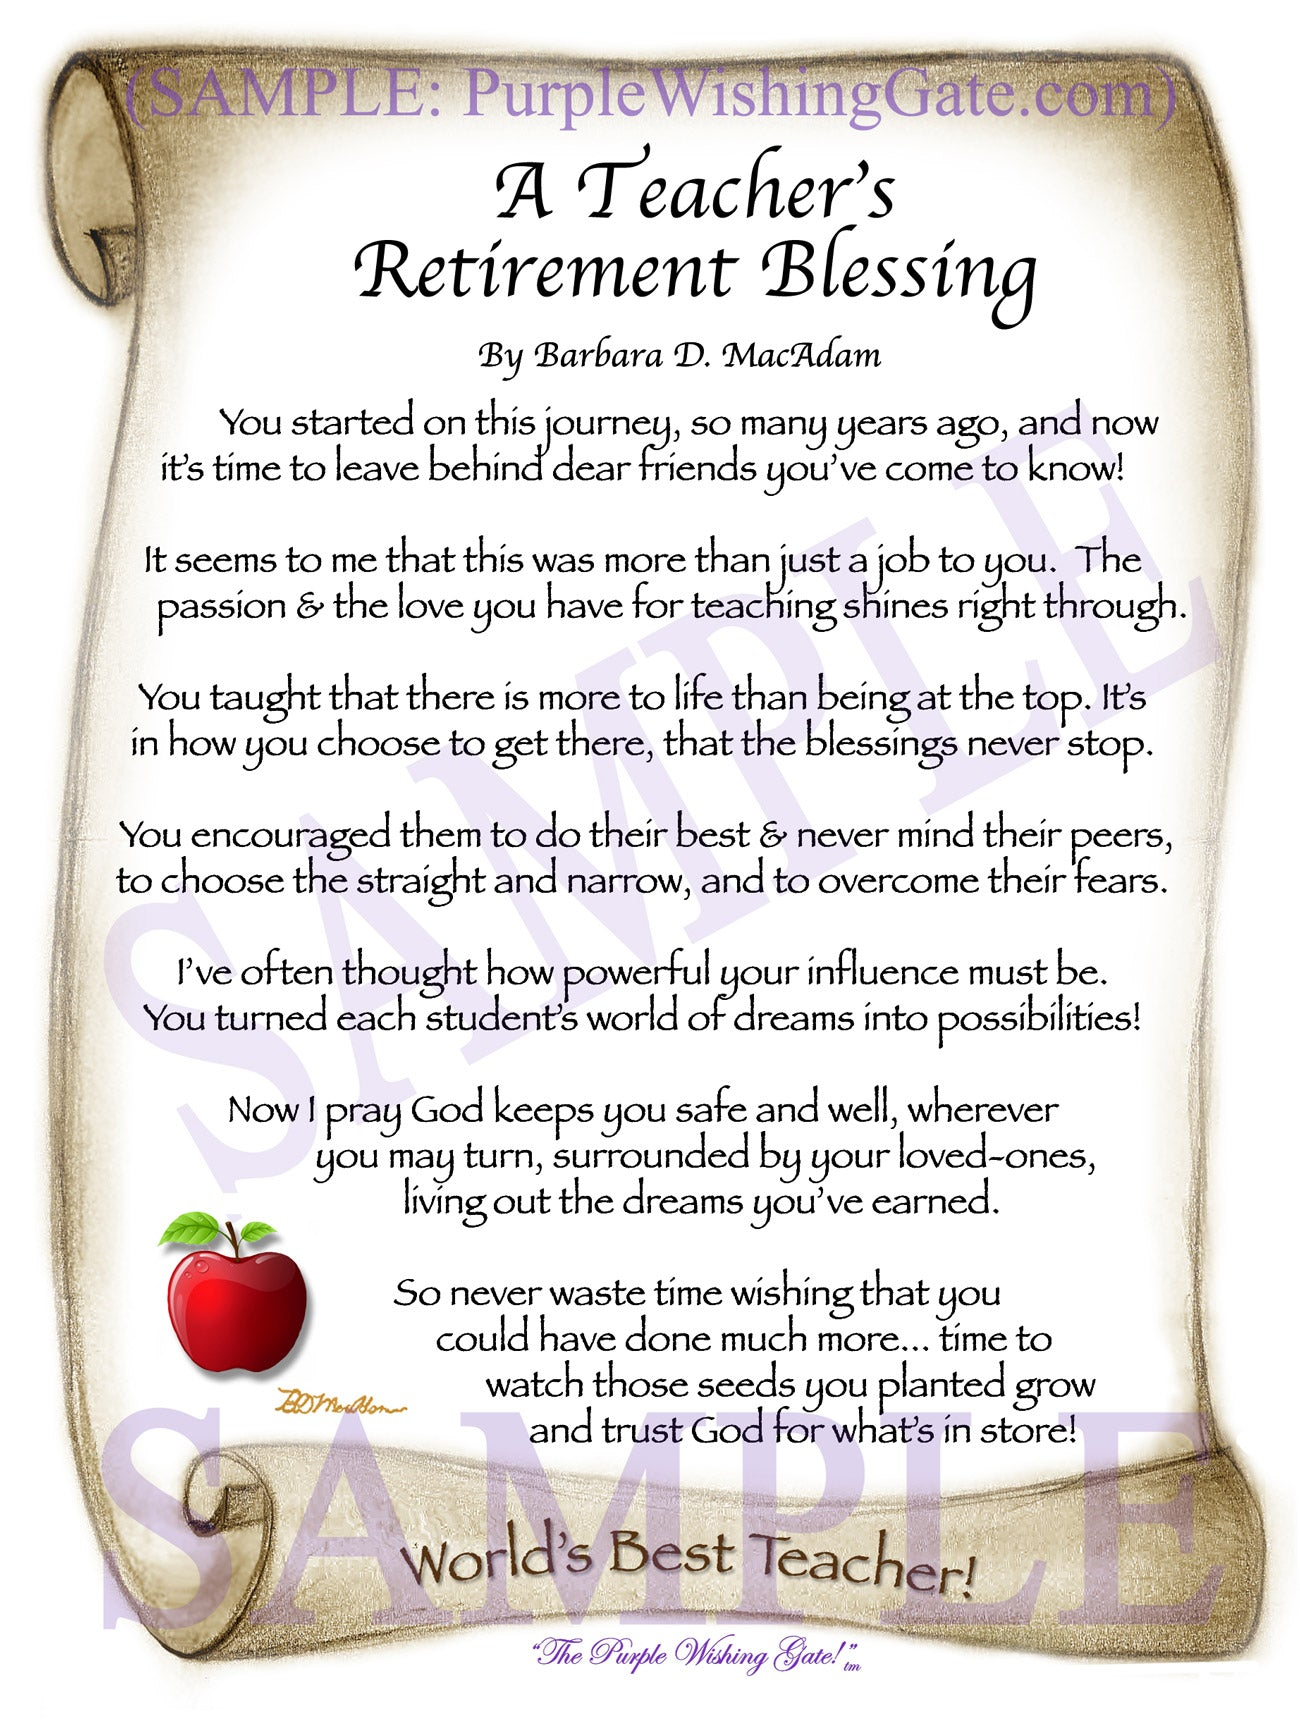 A Teacher's Retirement Blessing - Retirement Gift - PurpleWishingGate.com